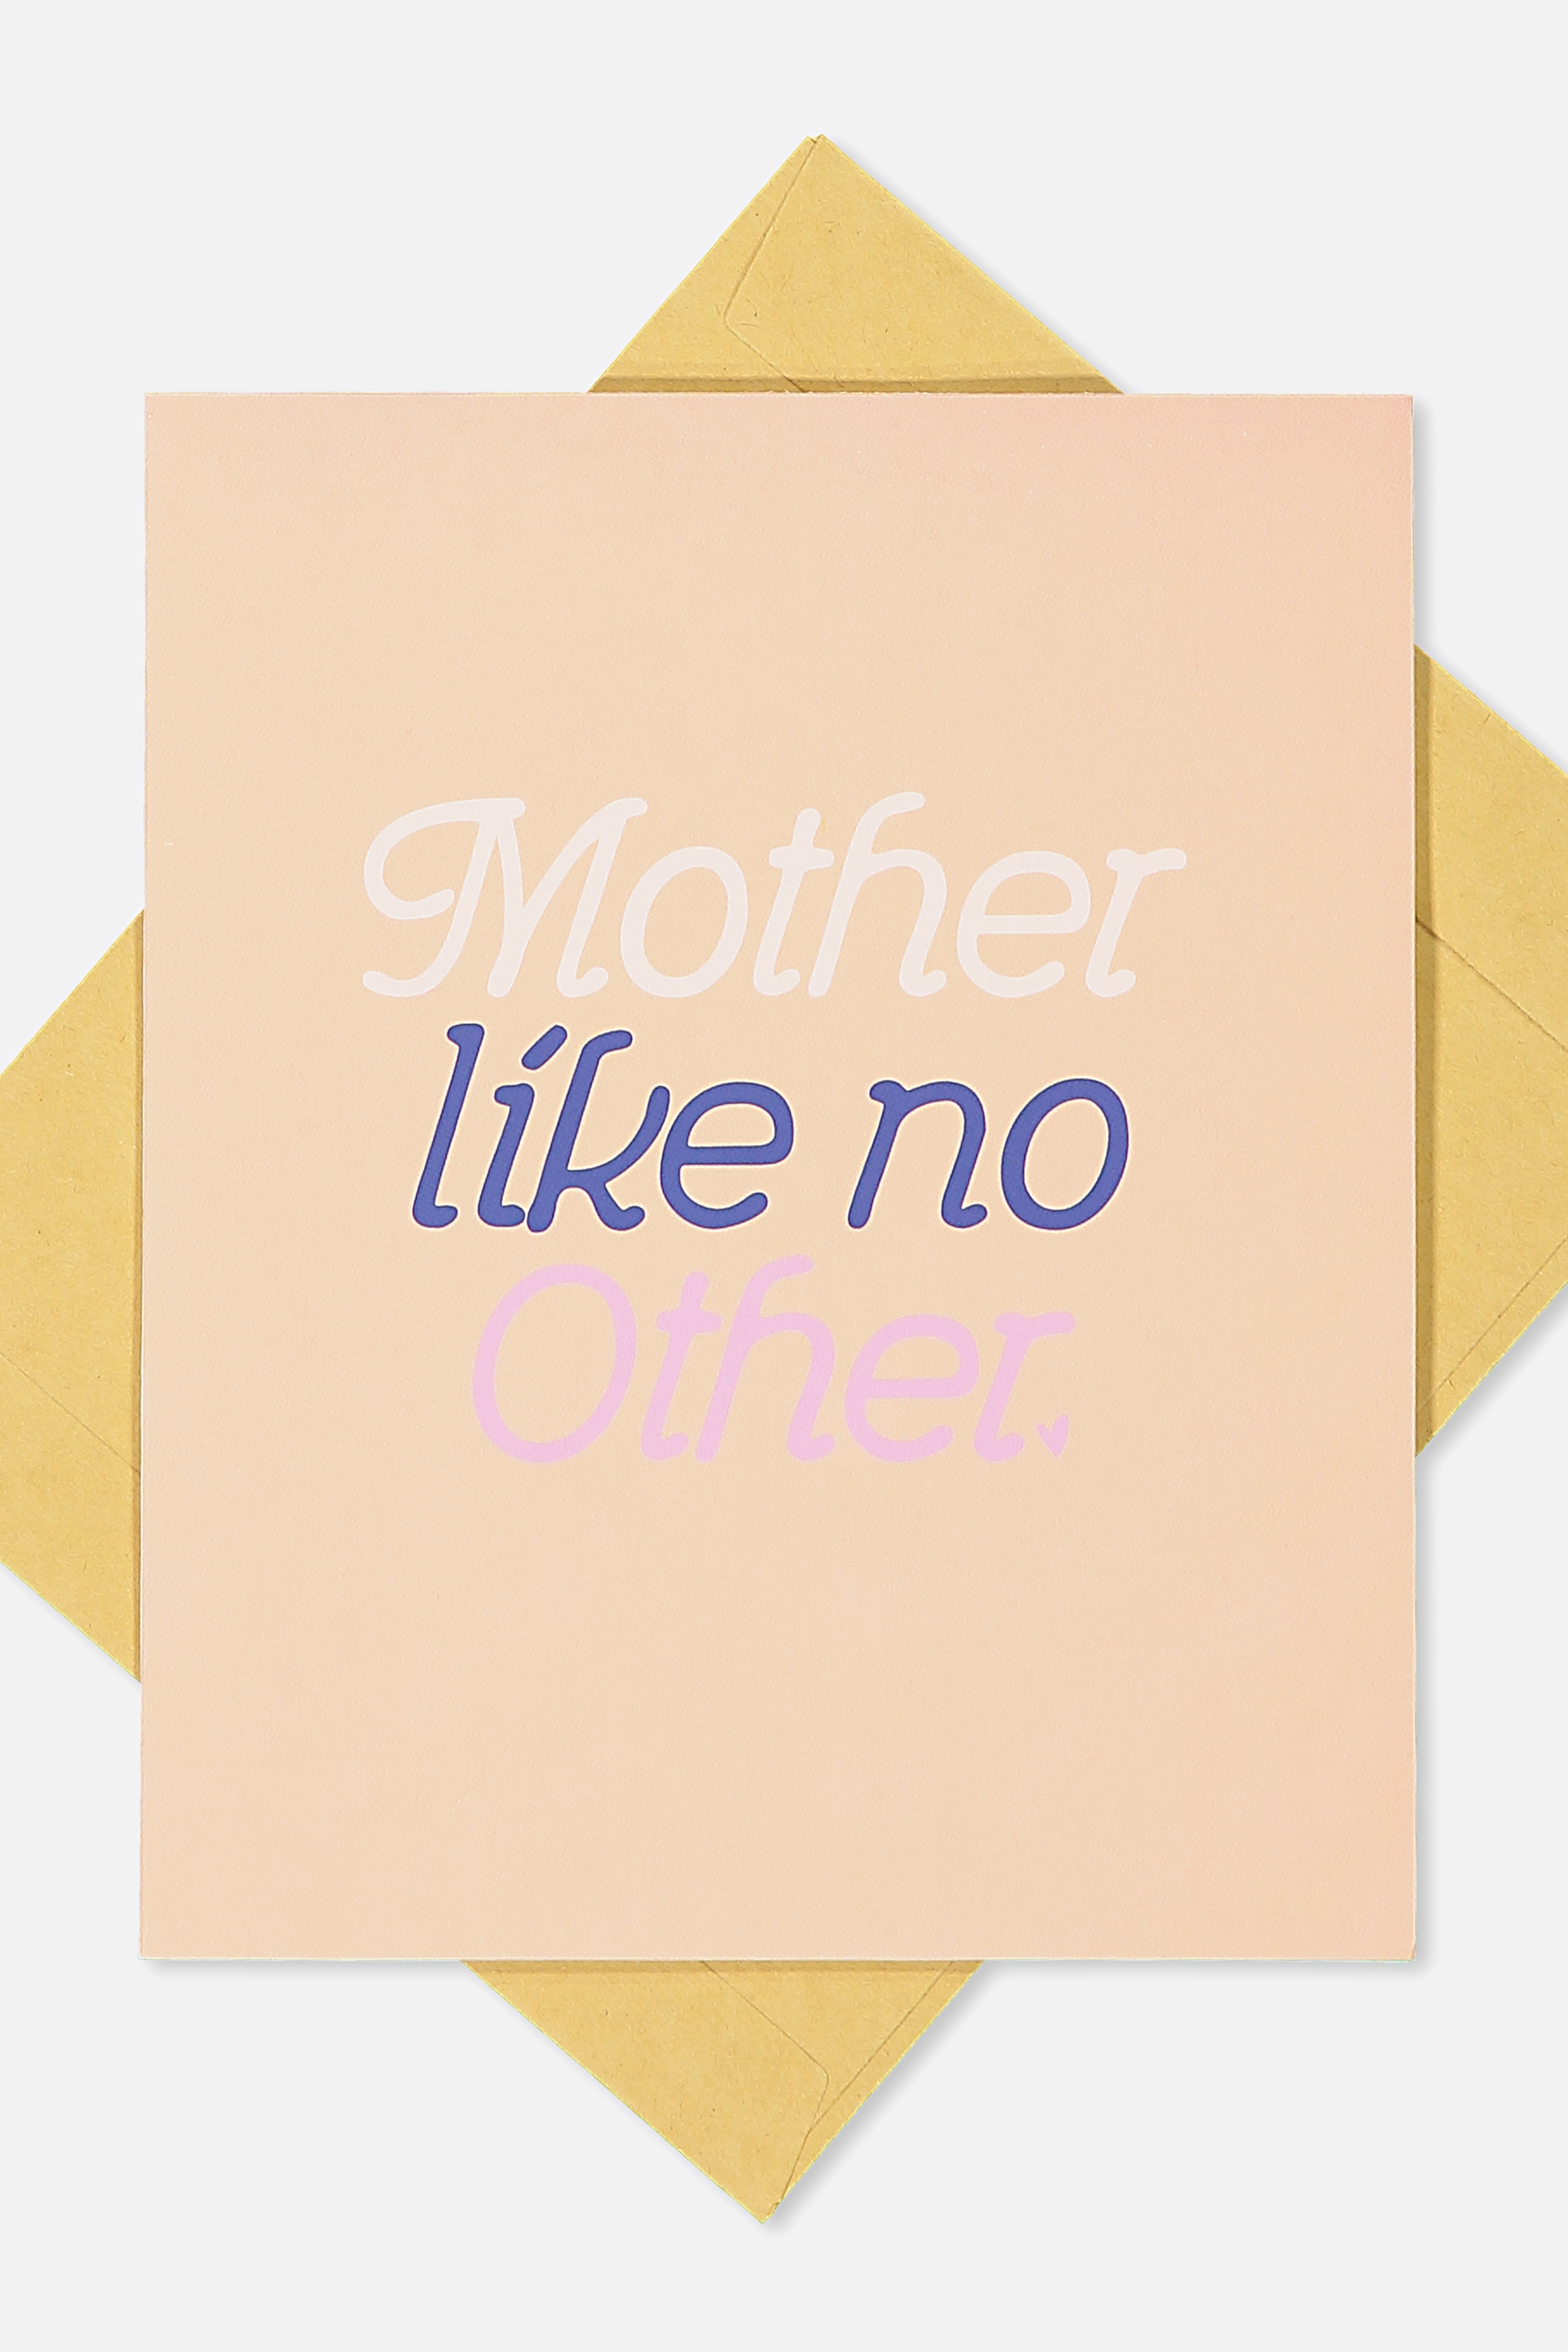 Typo - Mothers Day Cards 2018 - Like no other